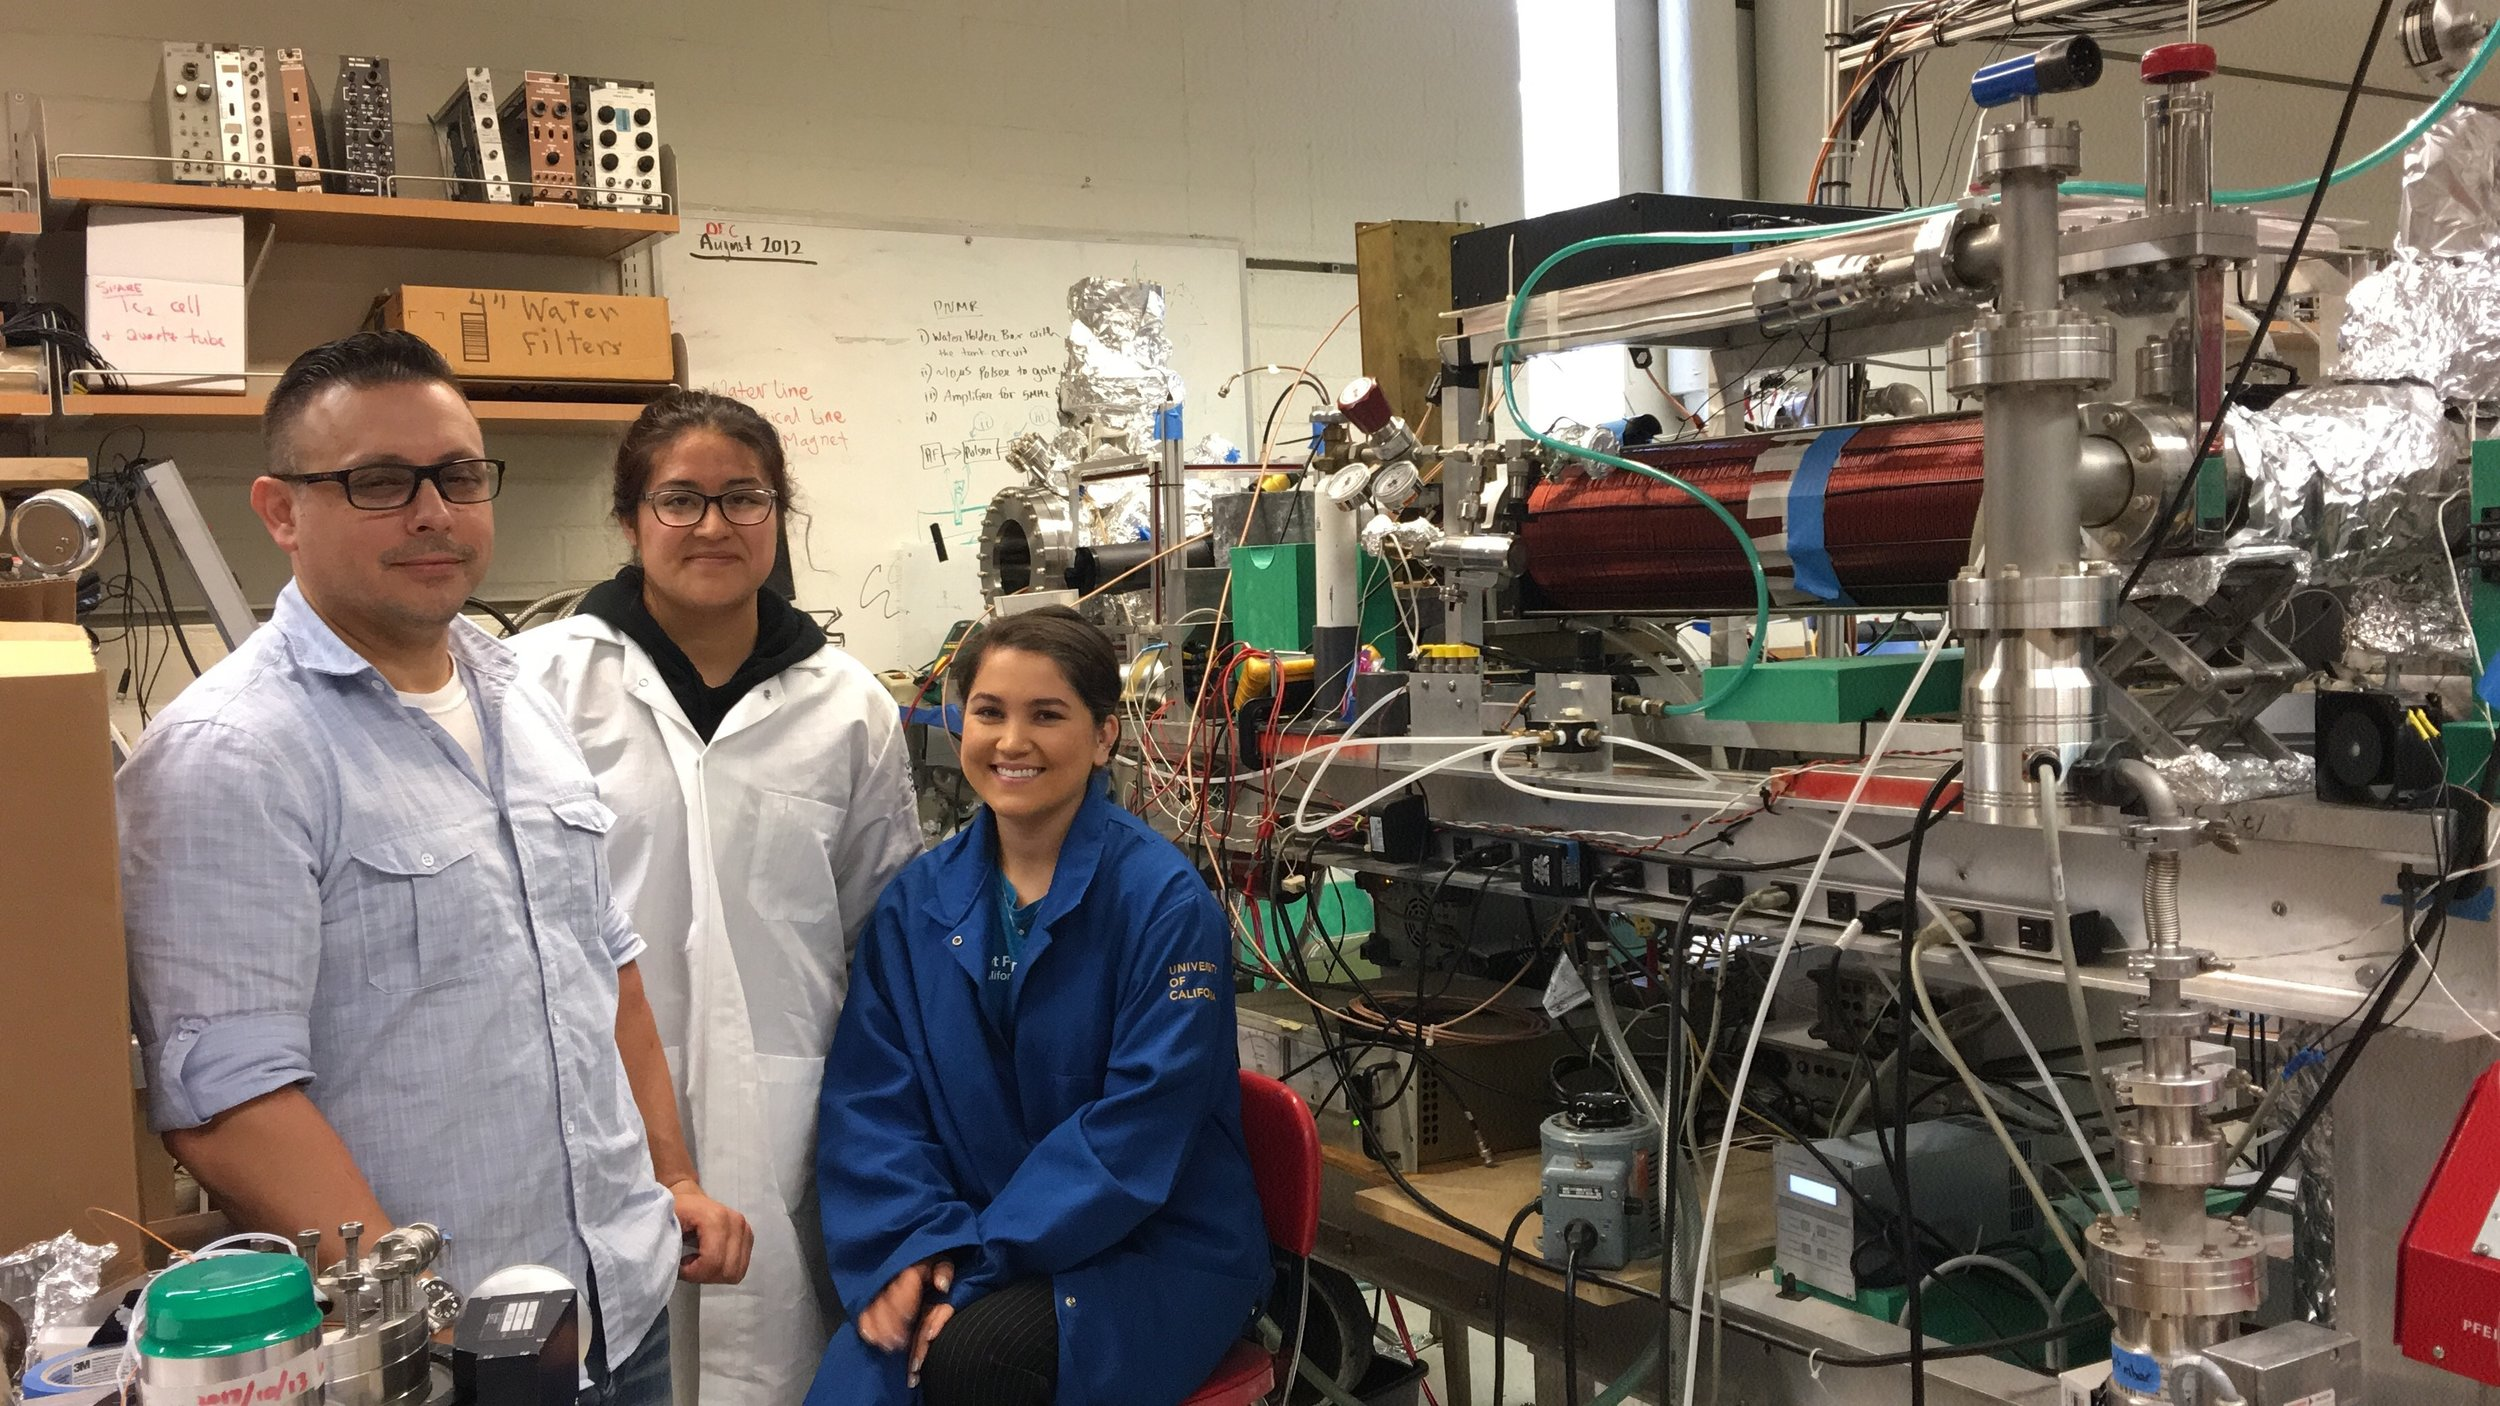 Miriam Contreras, Audrey Vasquez and Marcus Asaro pose in front of the steel machinery in the laboratory at University California, Riverside. Photo by Kiara Jerez.